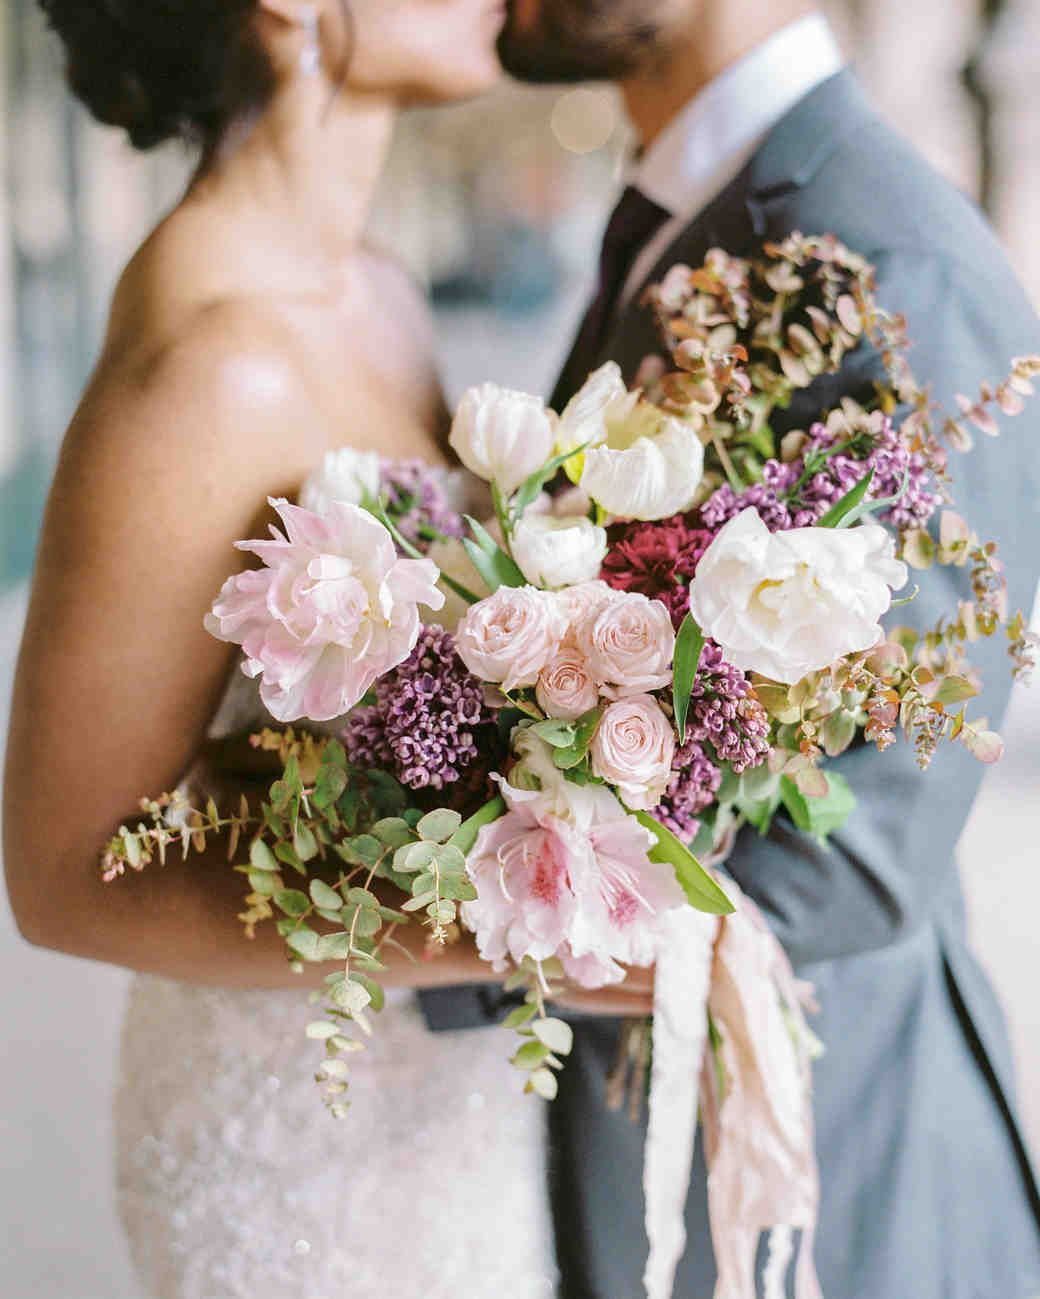 52 Ideas For Your Spring Wedding Bouquet Wedding Details